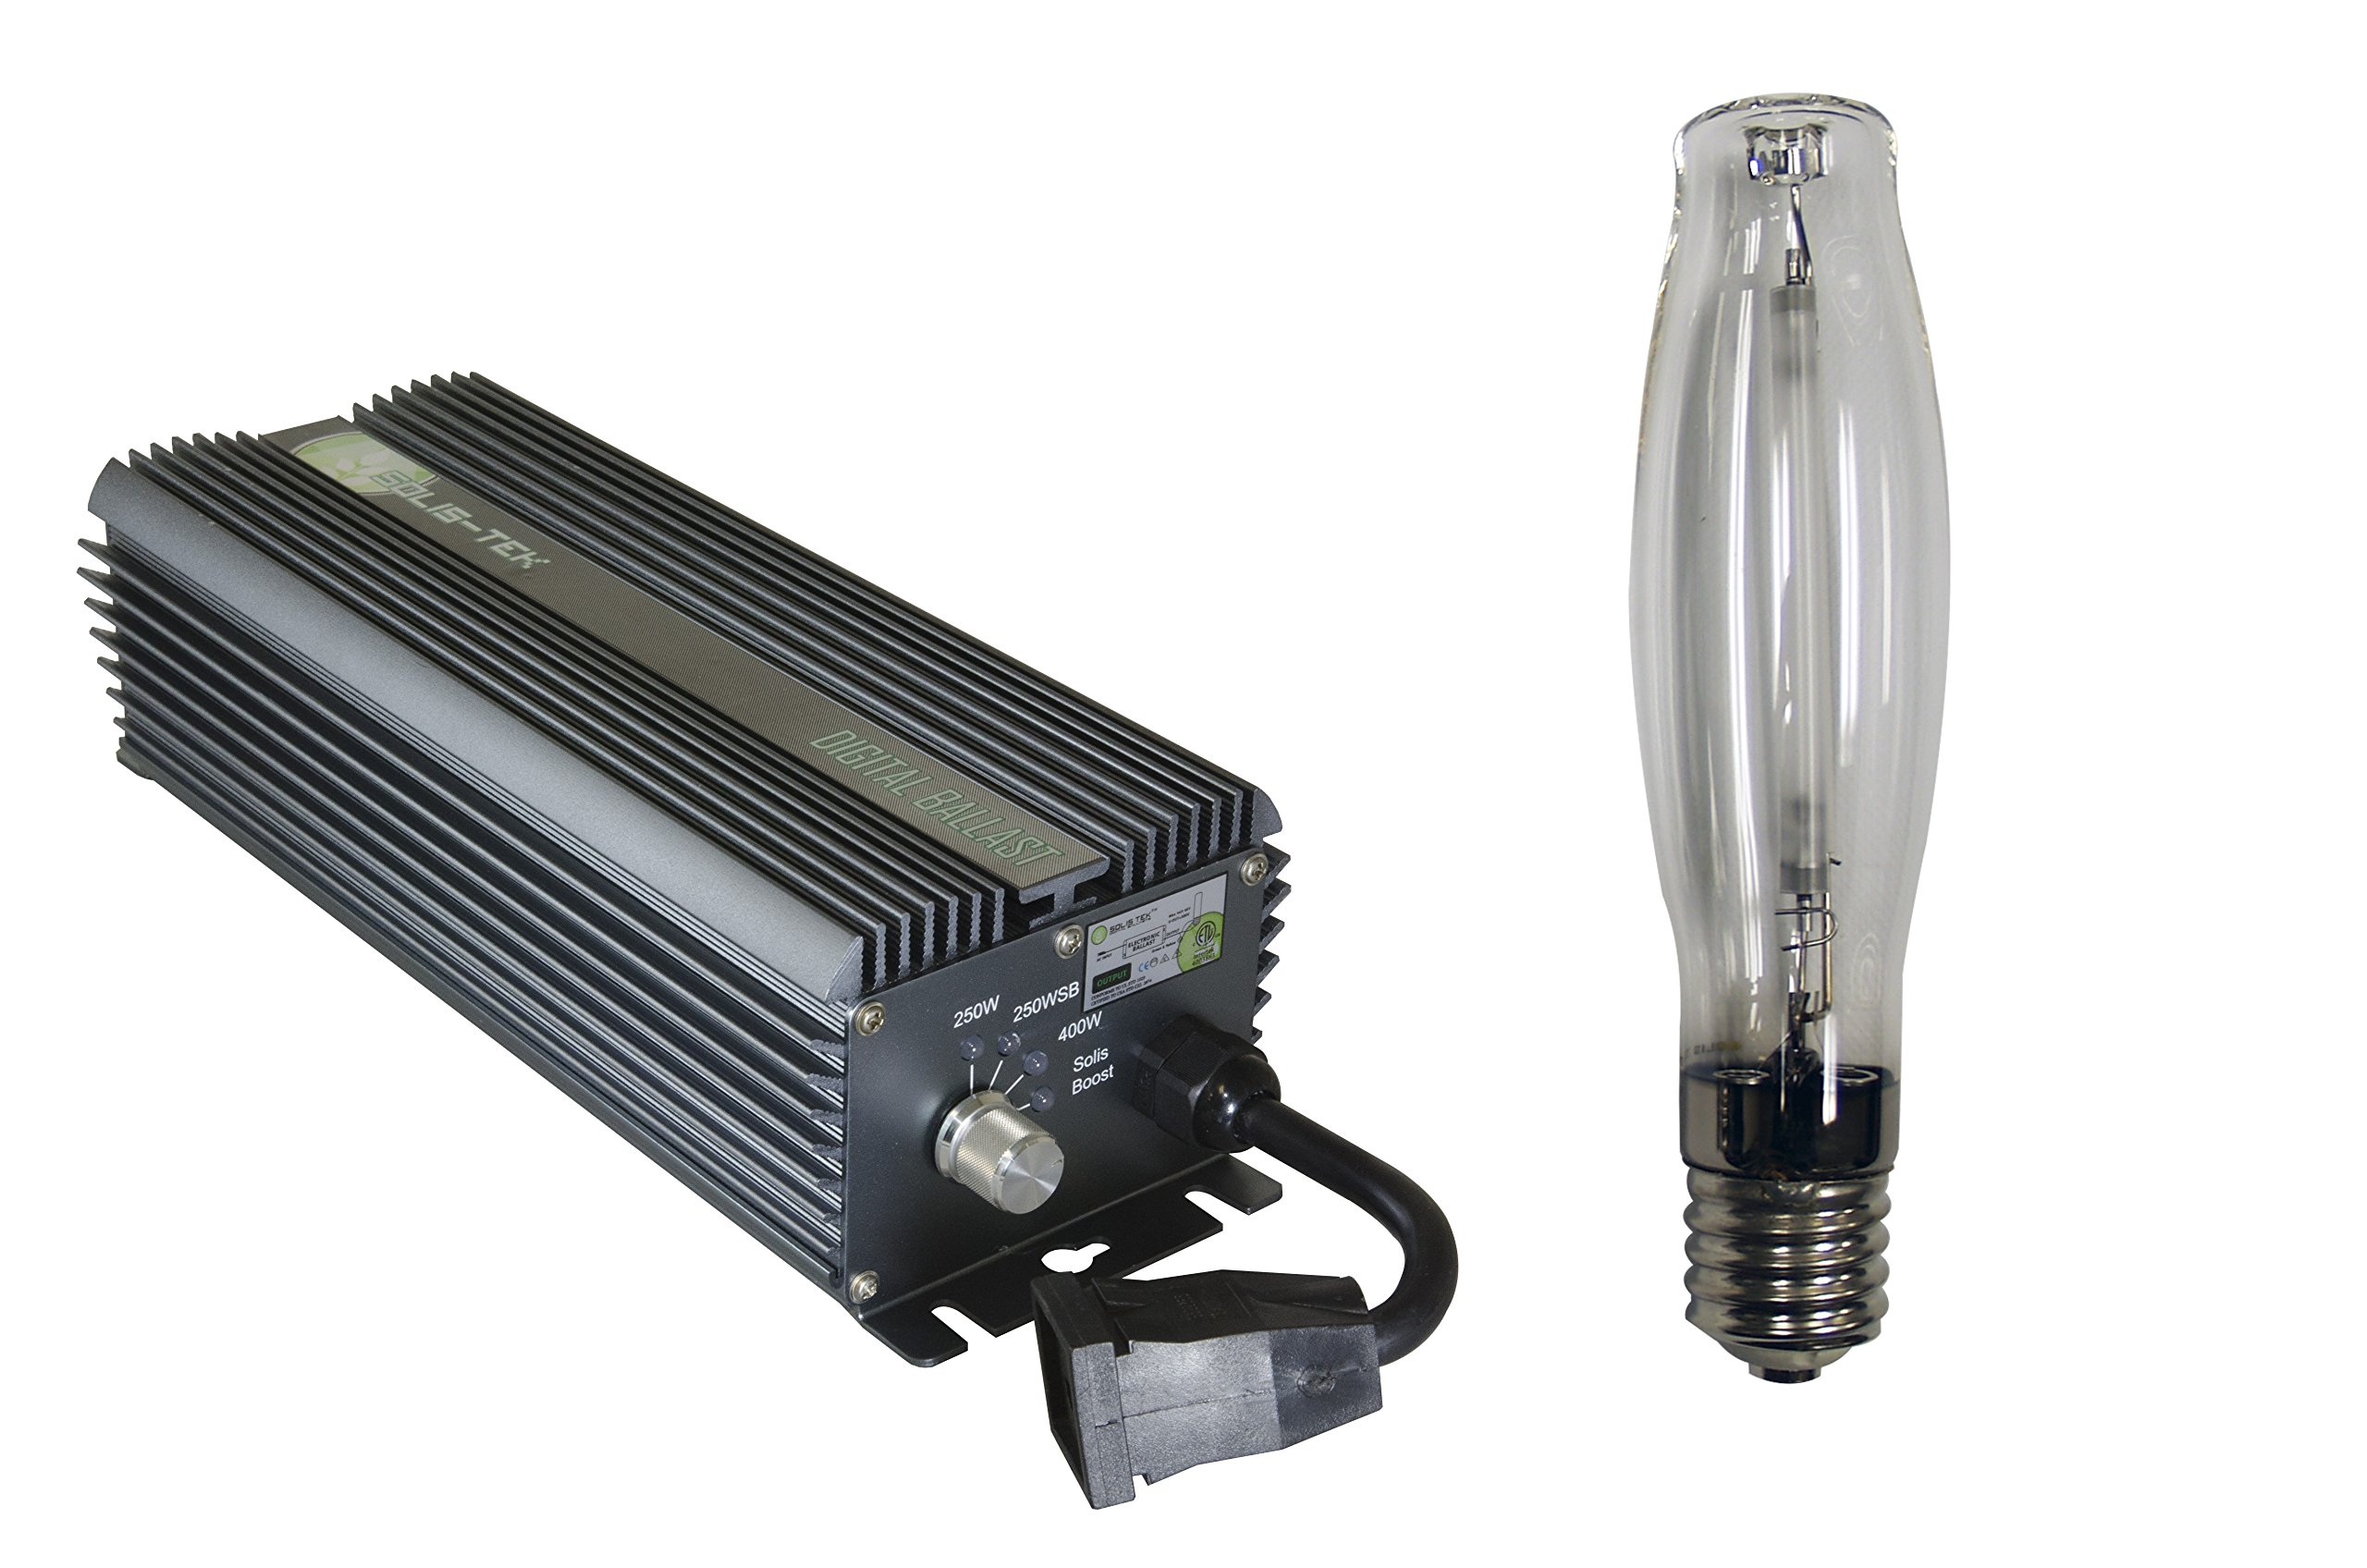 SolisTek 400 watt Digital Ballast with Hps Grow Light by Solis Tek